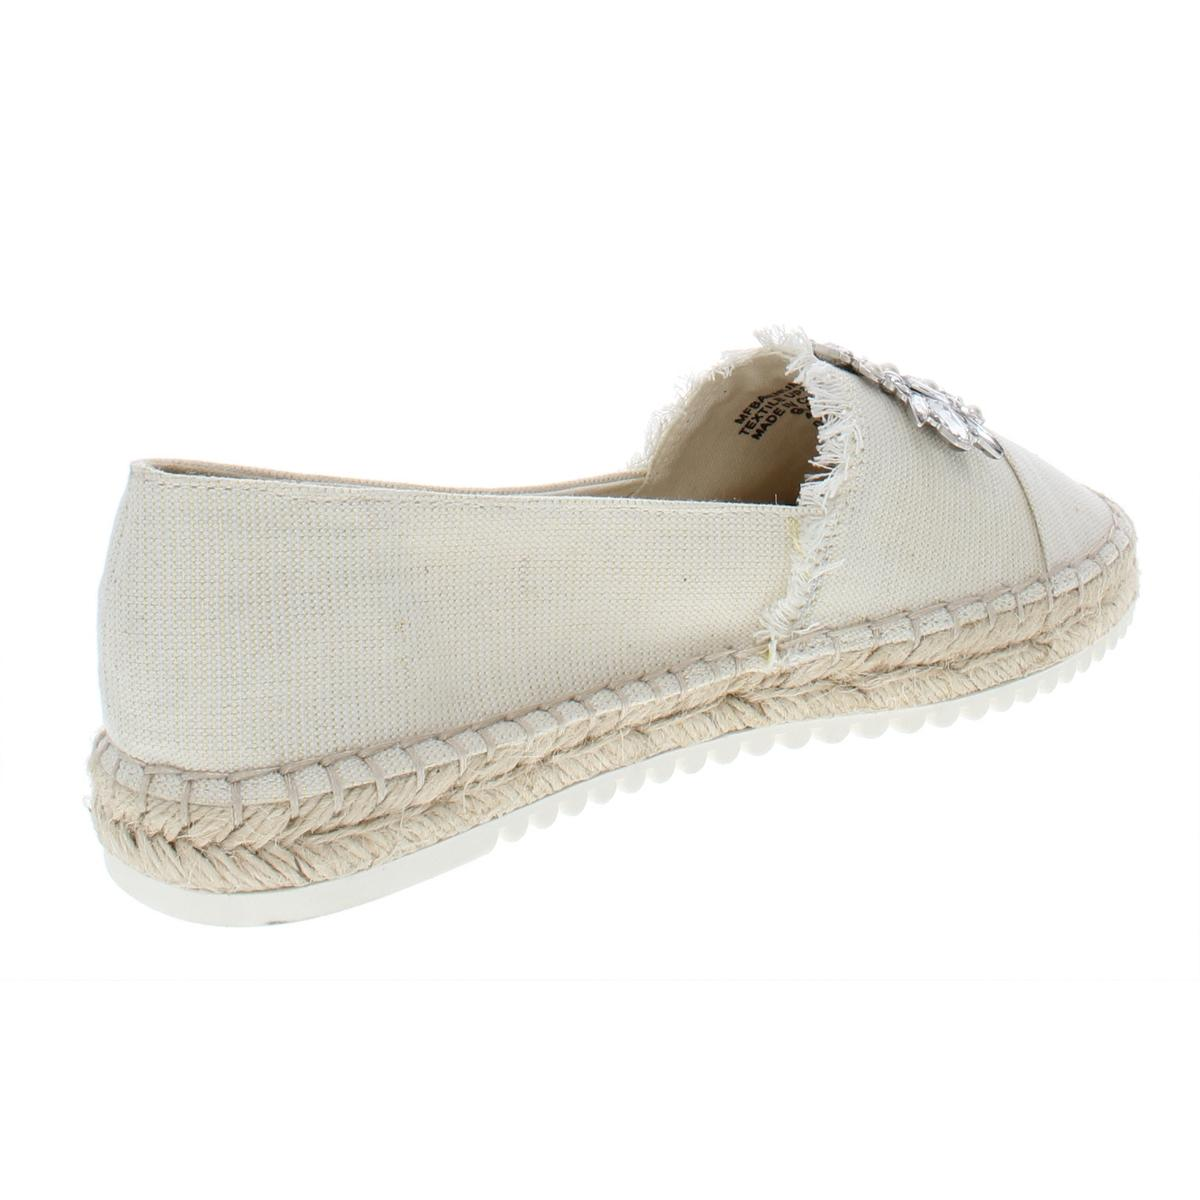 Marc-Fisher-Womens-Barnum-2-Metallic-Embellished-Espadrilles-Shoes-BHFO-6409 thumbnail 4